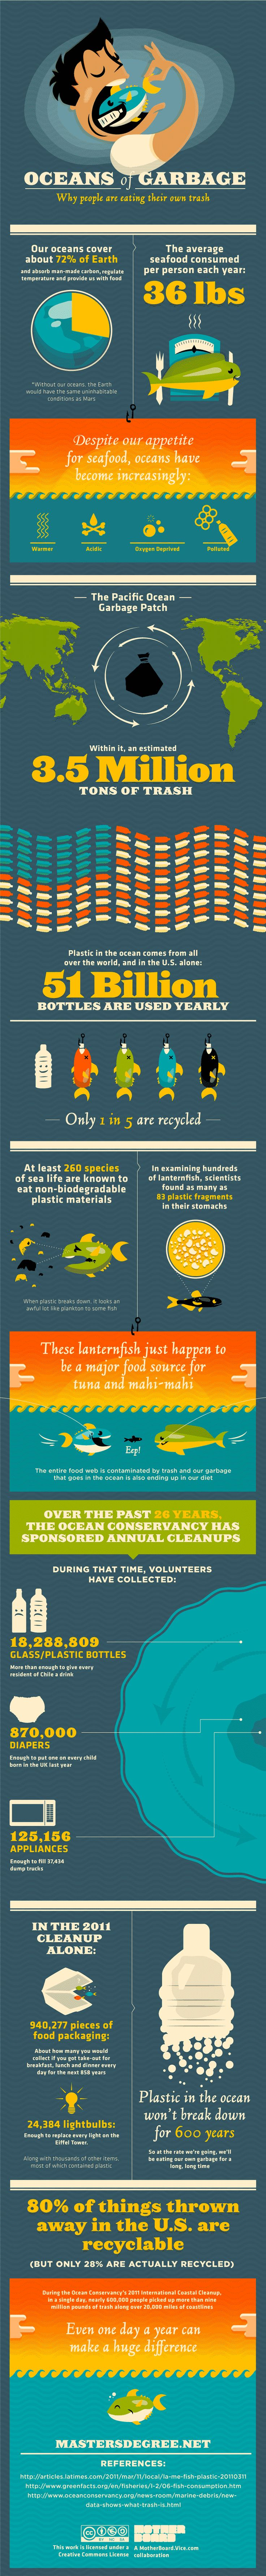 Oceans of Garbage: Why People Are Eating Their Own Trash